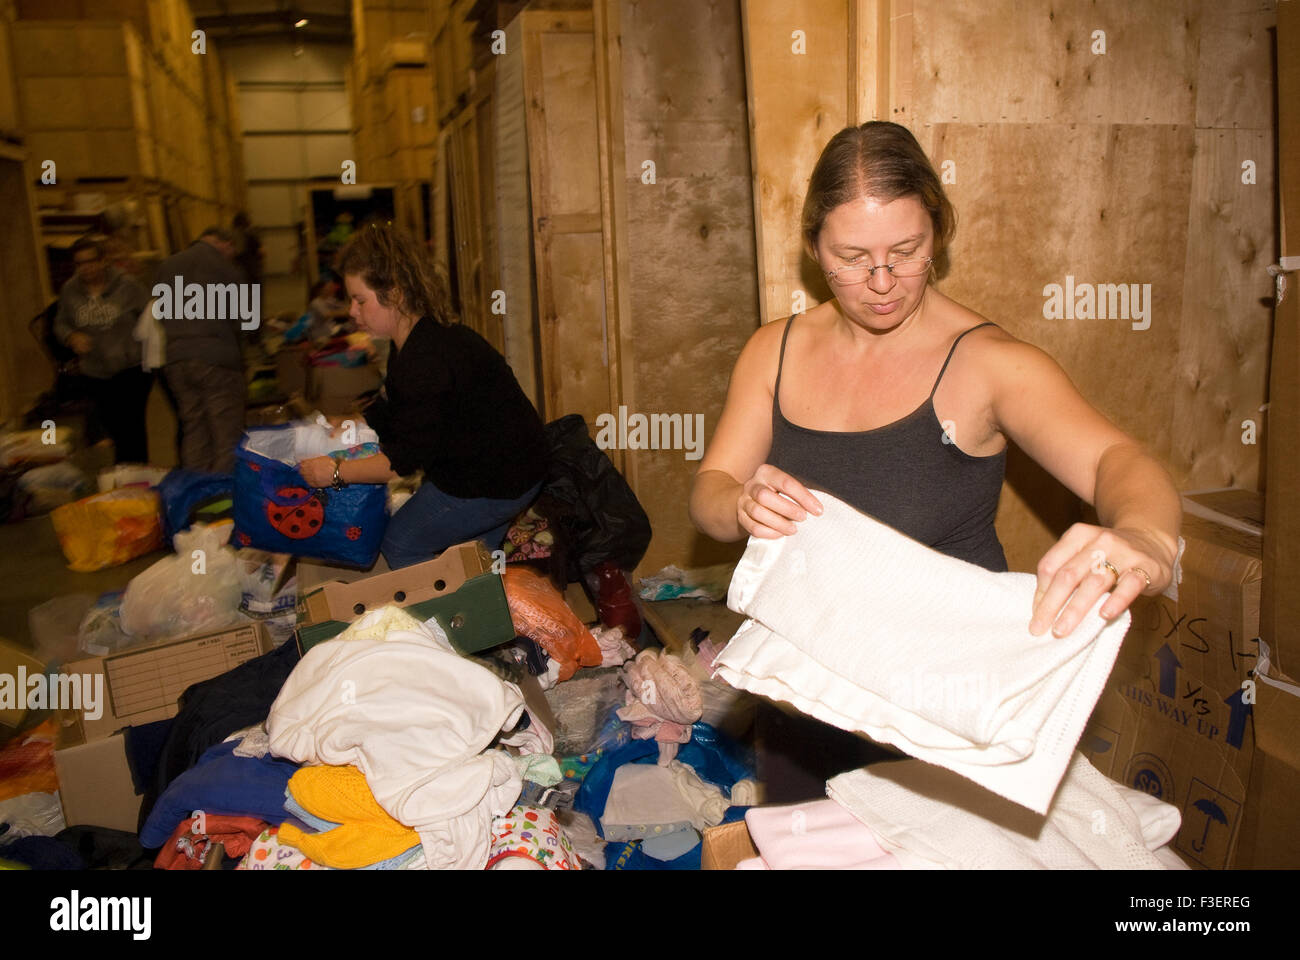 Volunteer in a removal company's warehouse packing up donated items of clothing and other non-perishable items - Stock Image